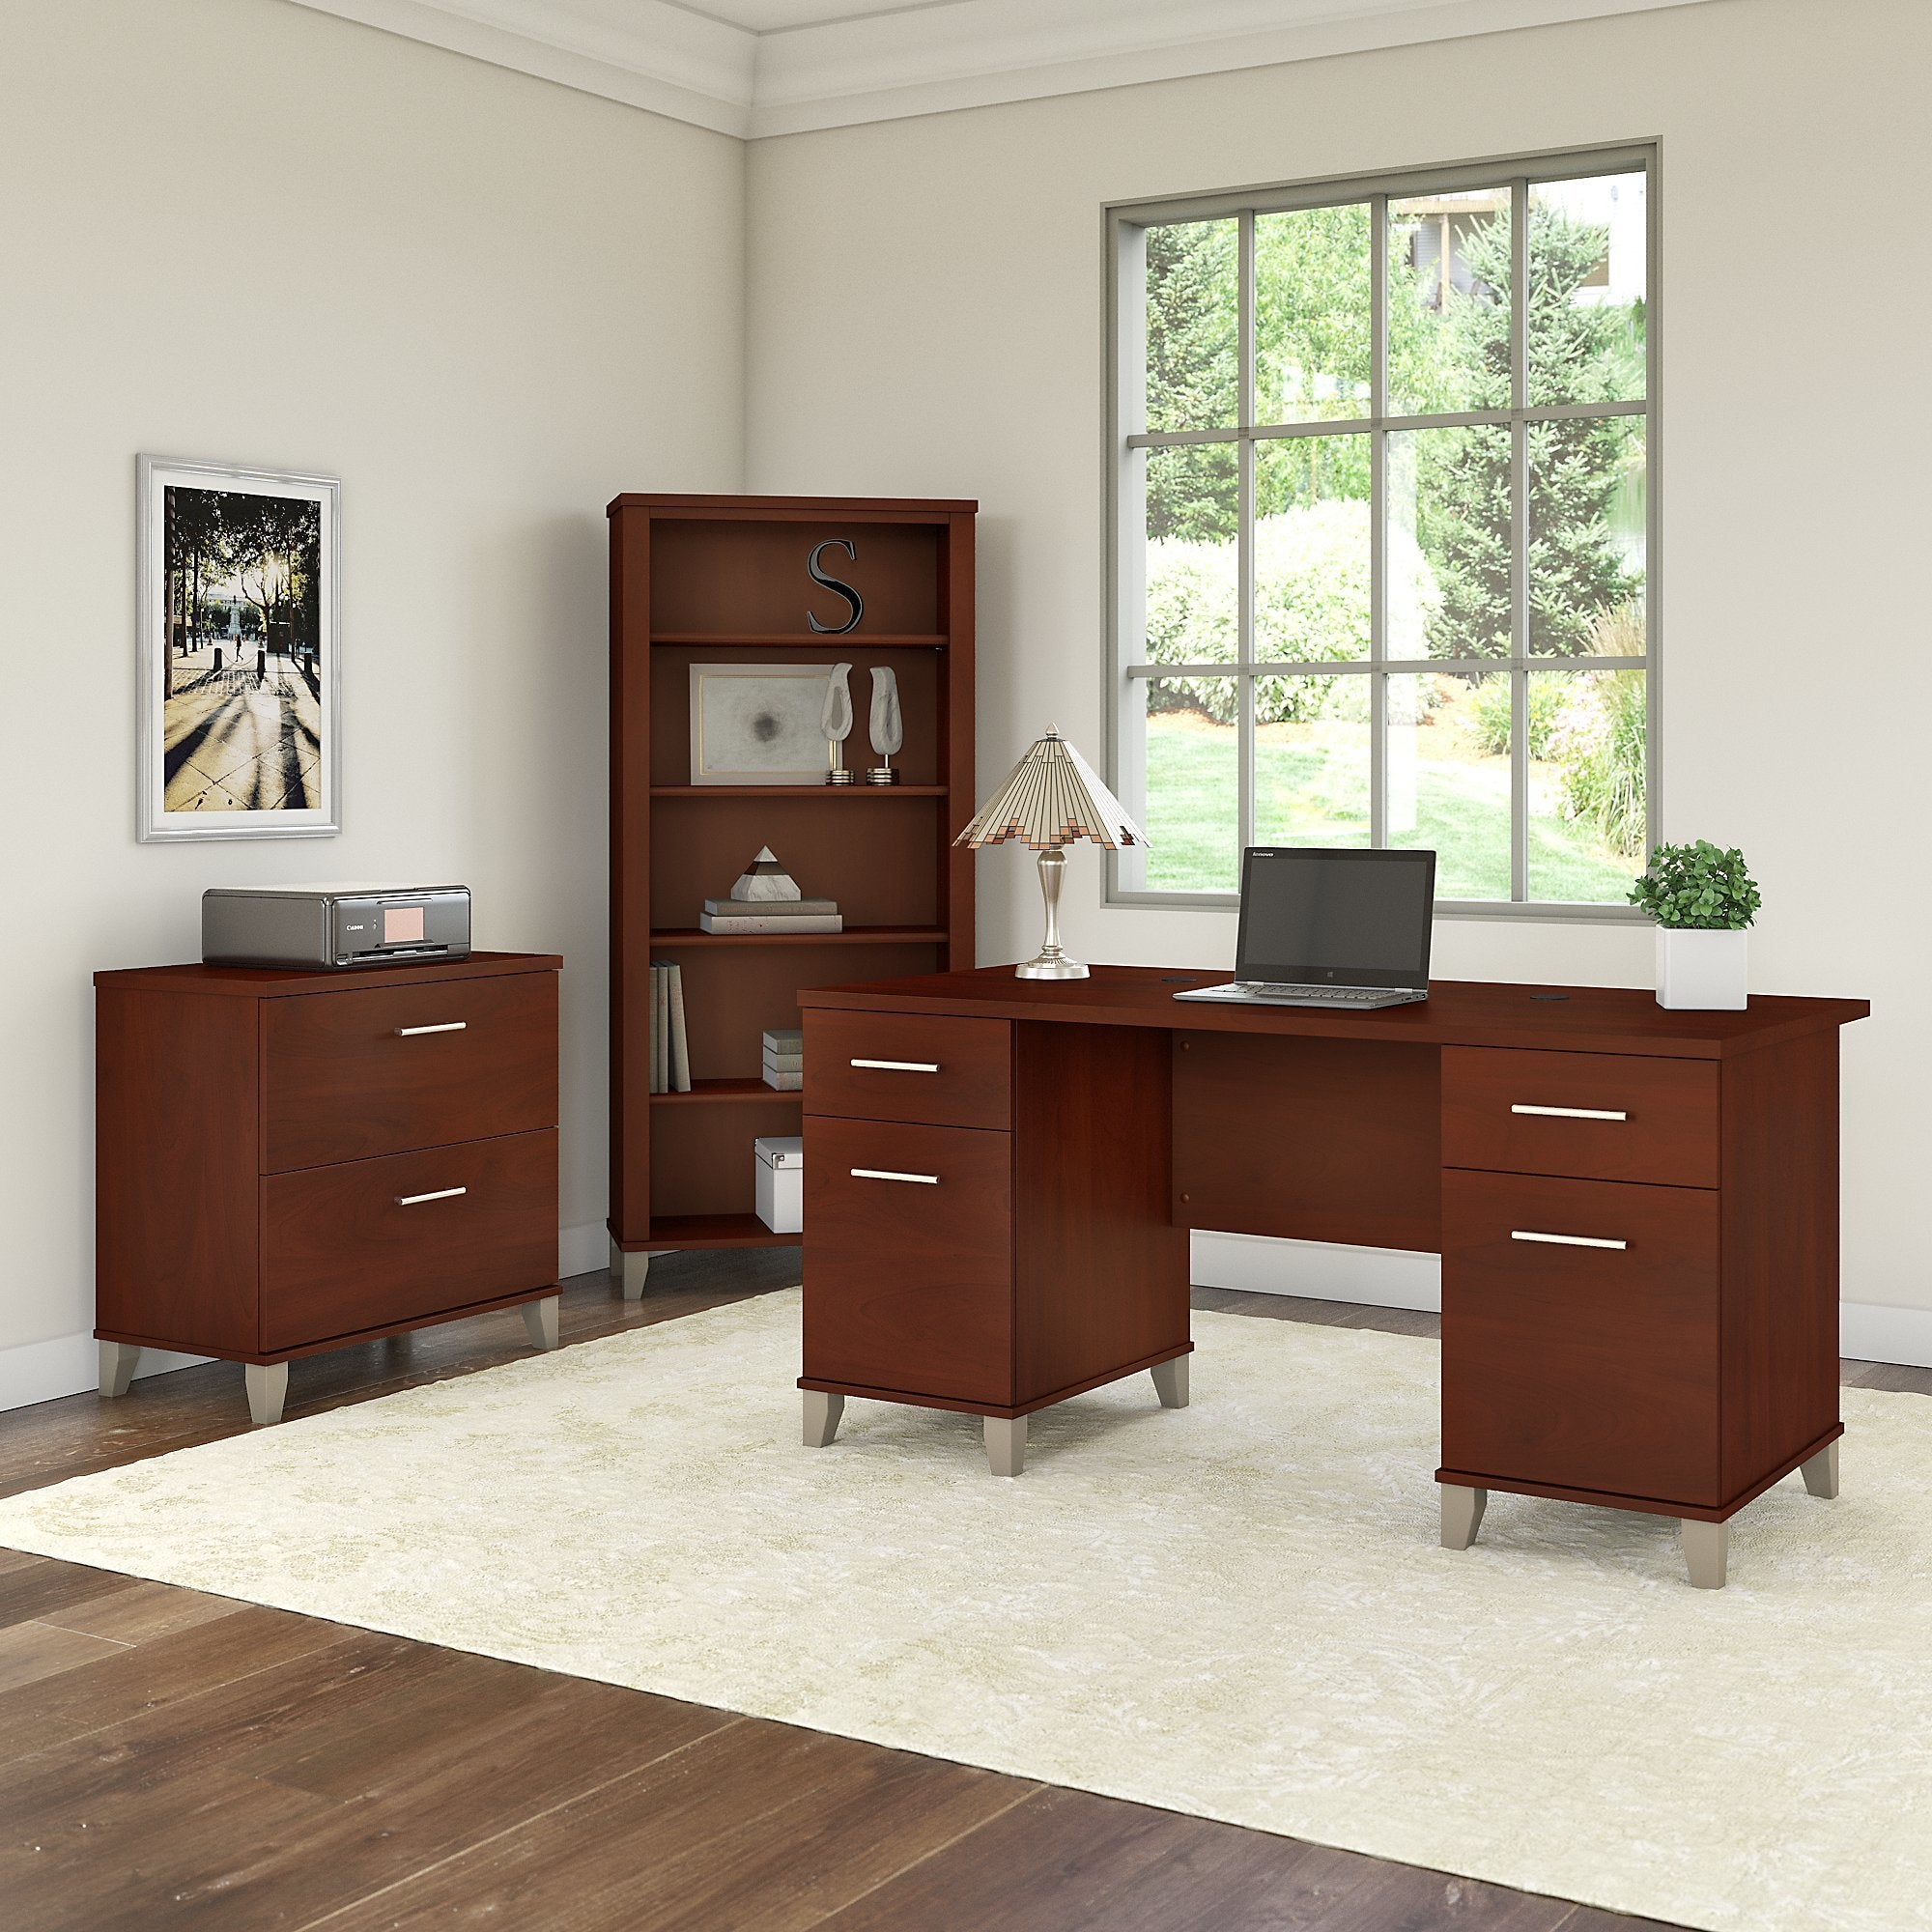 Copper Grove Shumen 60 Inch Office Desk With Cabinet And 5 Shelf Bookcase In Cherry